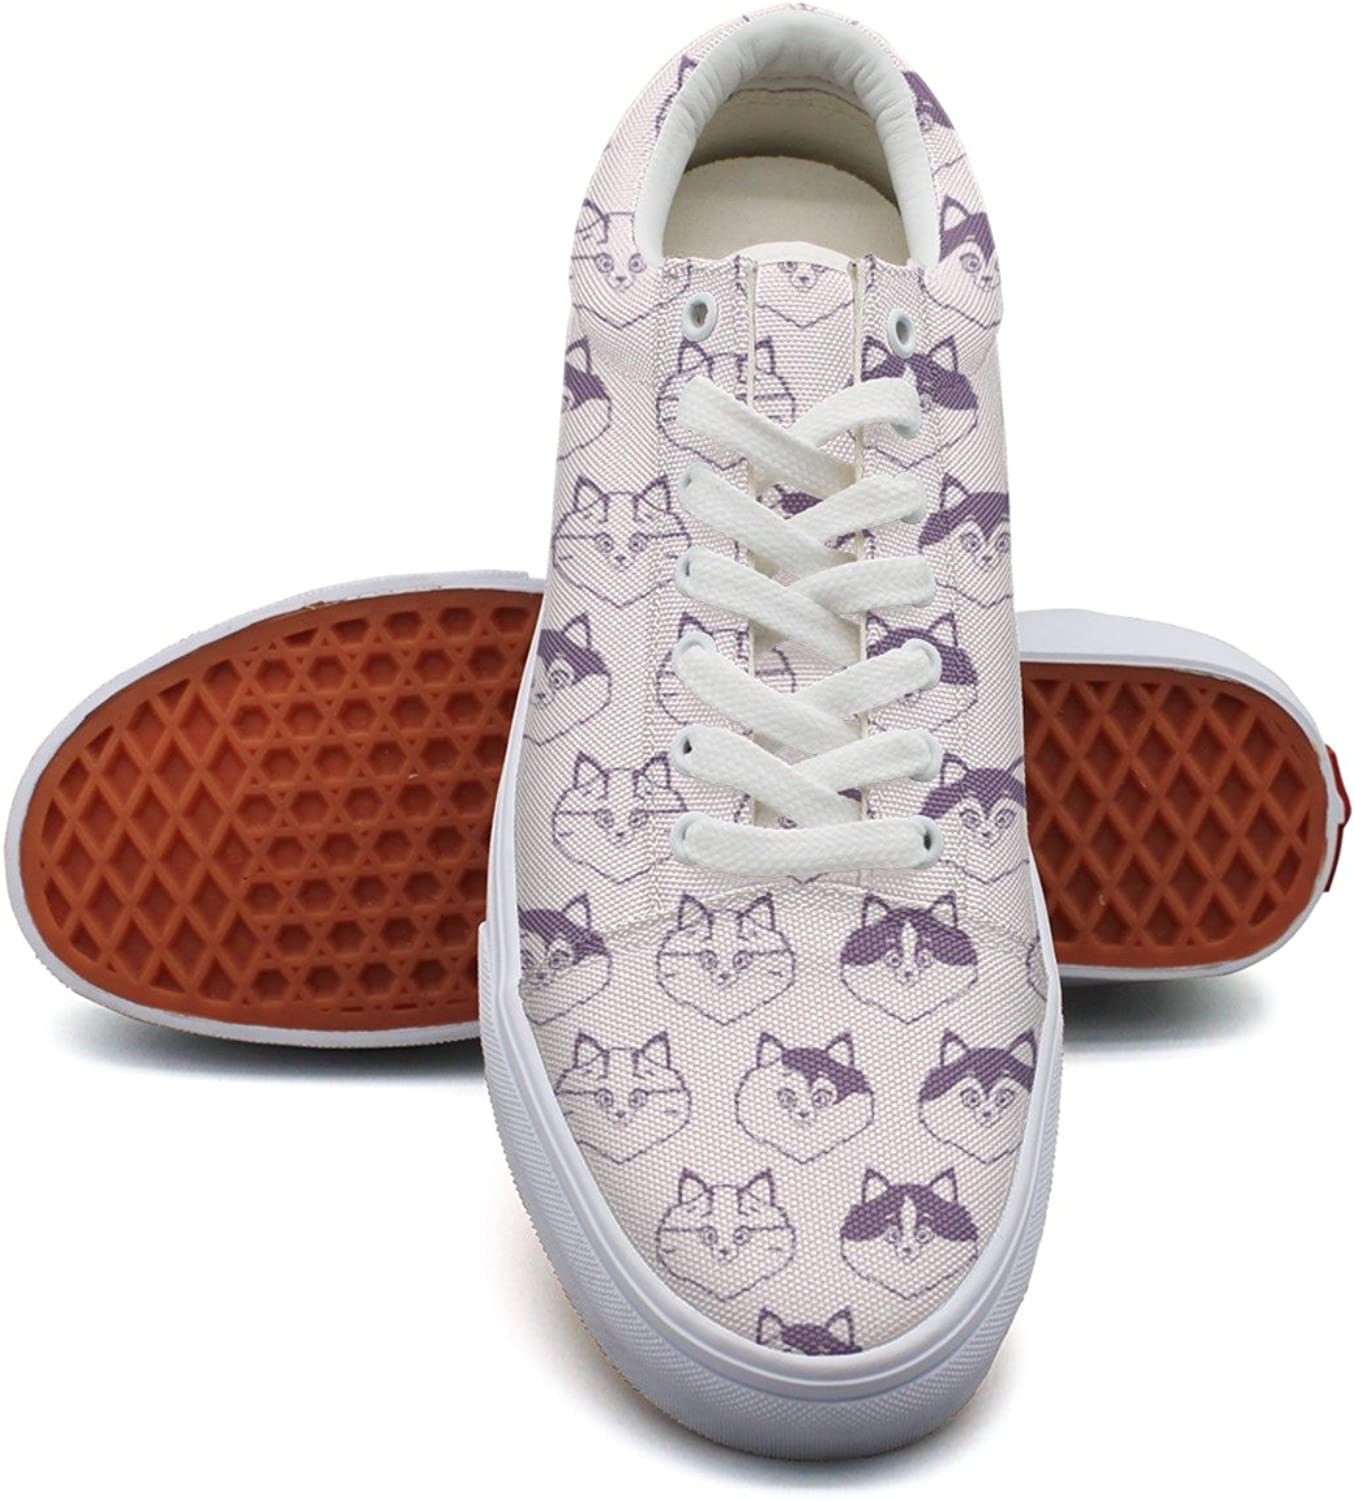 Cute Cat Face Heads Pink Background Womens Latest Canvas Boat shoes Low Top Cool Volleyball Sneakers for Women